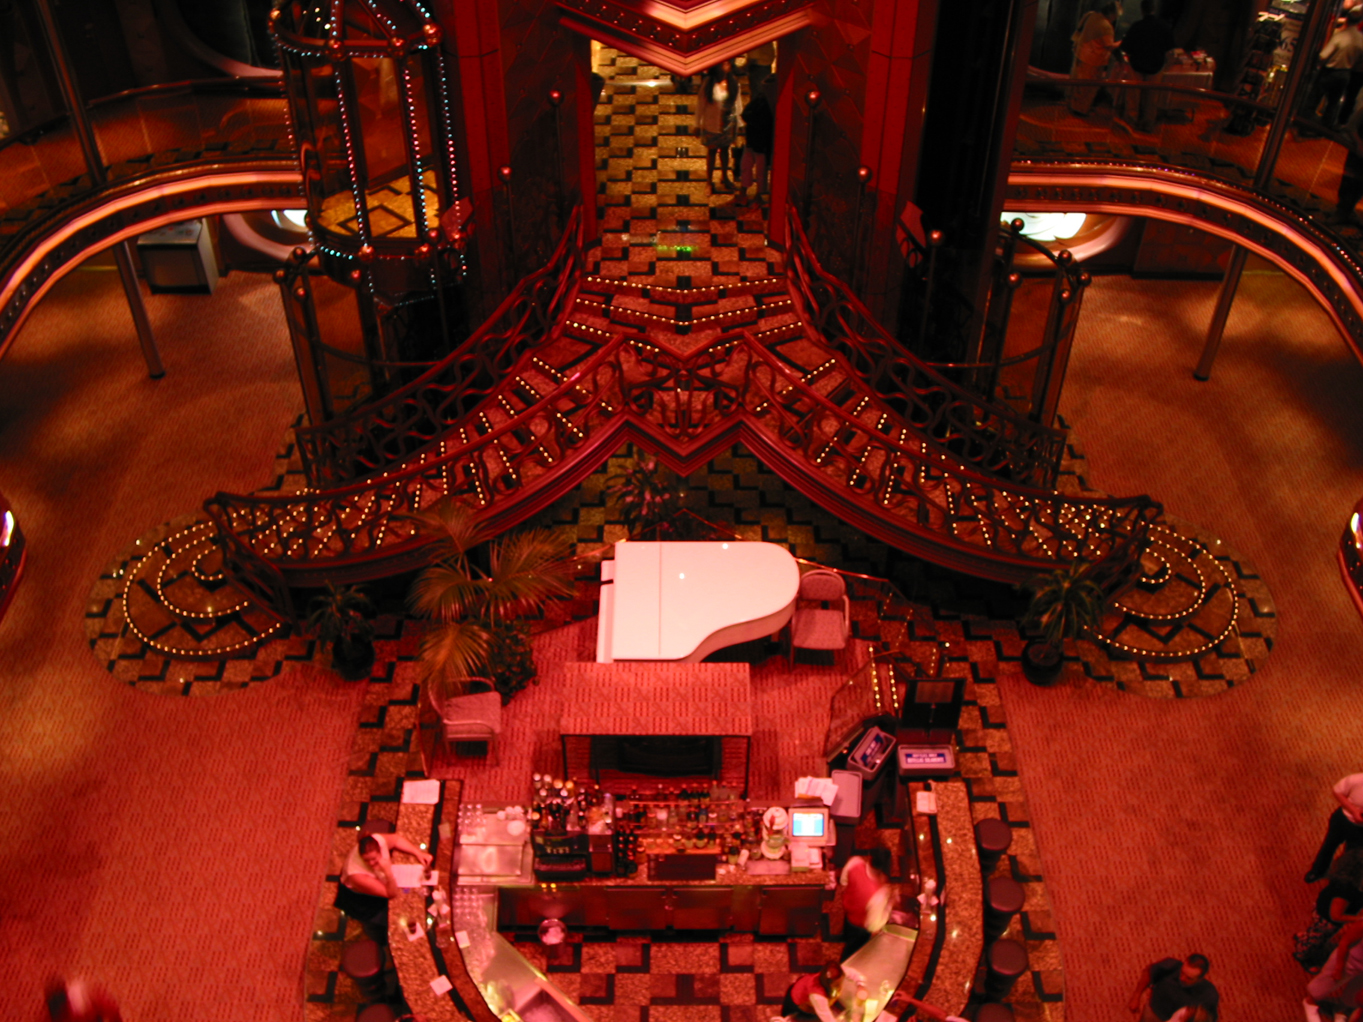 'The Avery' ground level w/ the stair case, piano, and bar.